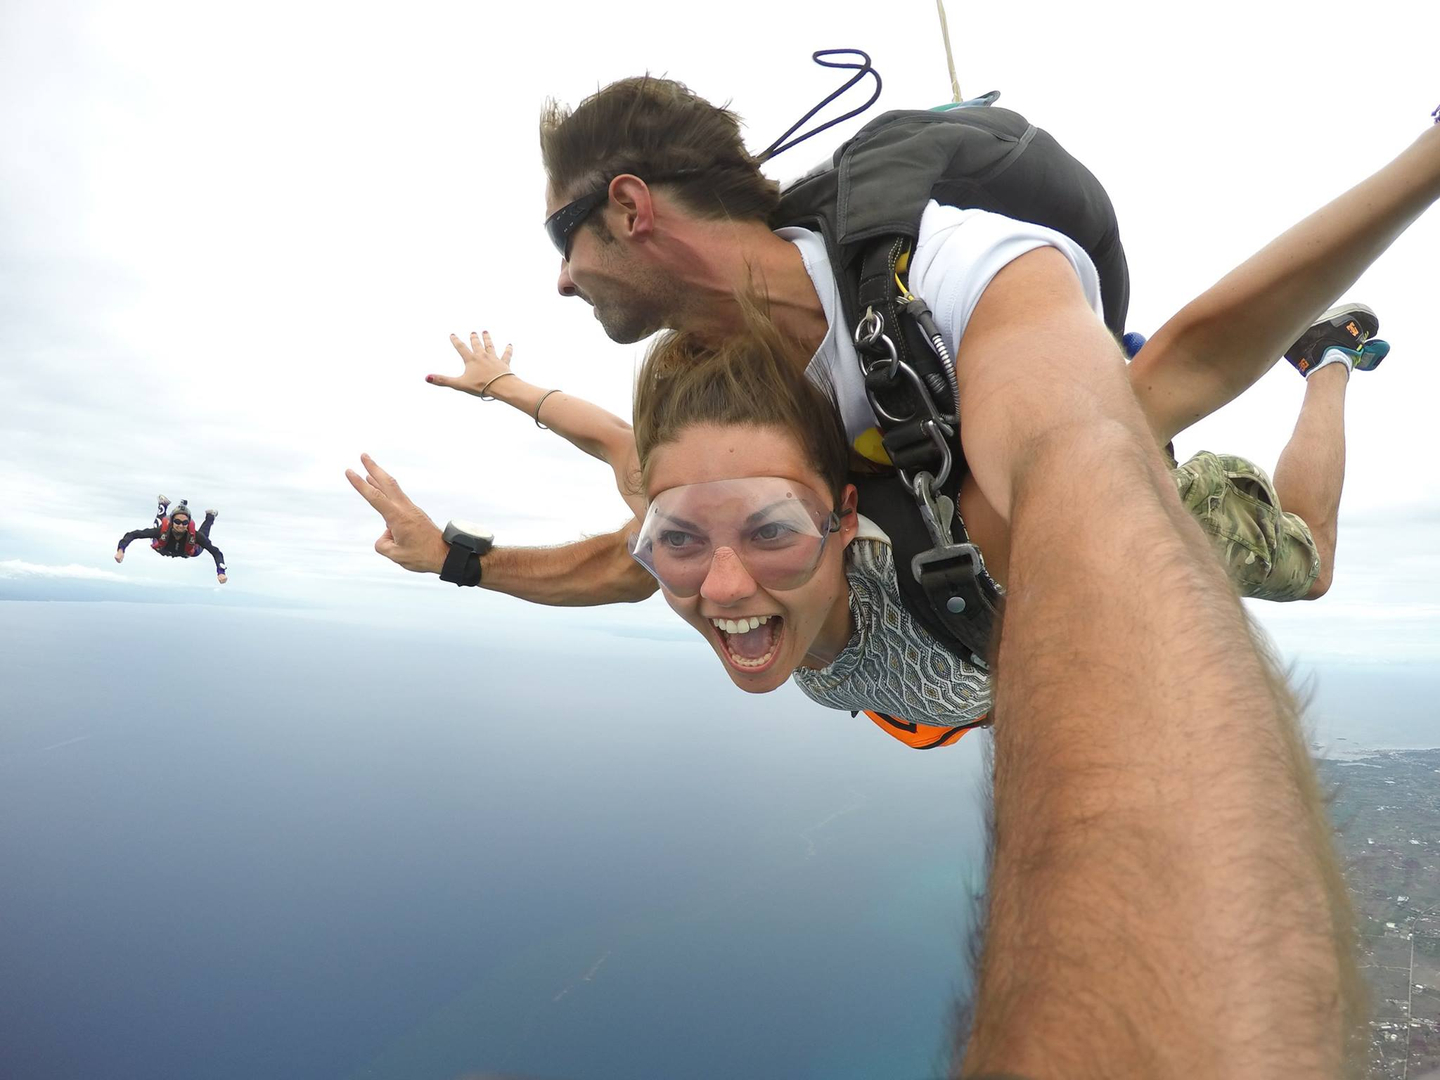 BOOK YOUR TANDEM SKYDIVE in the PHILIPPINES!